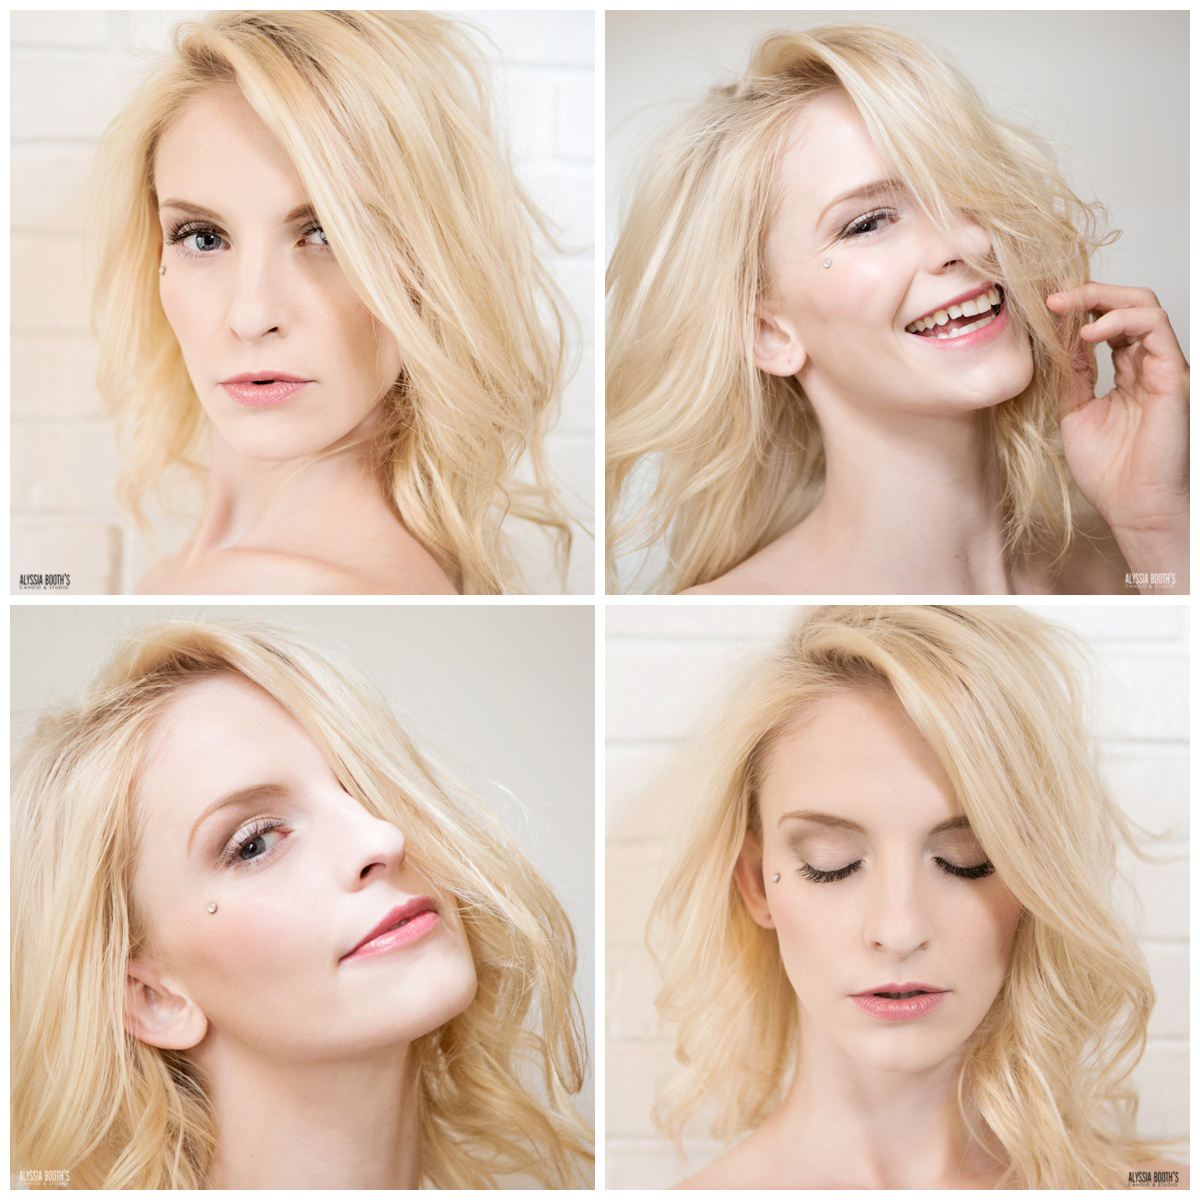 Natural look makeup | Pink lip | Makeup Test | Lashes | Amy Lewis Makeup | Alyssia Booth's Candid & Studio | Test Shoot